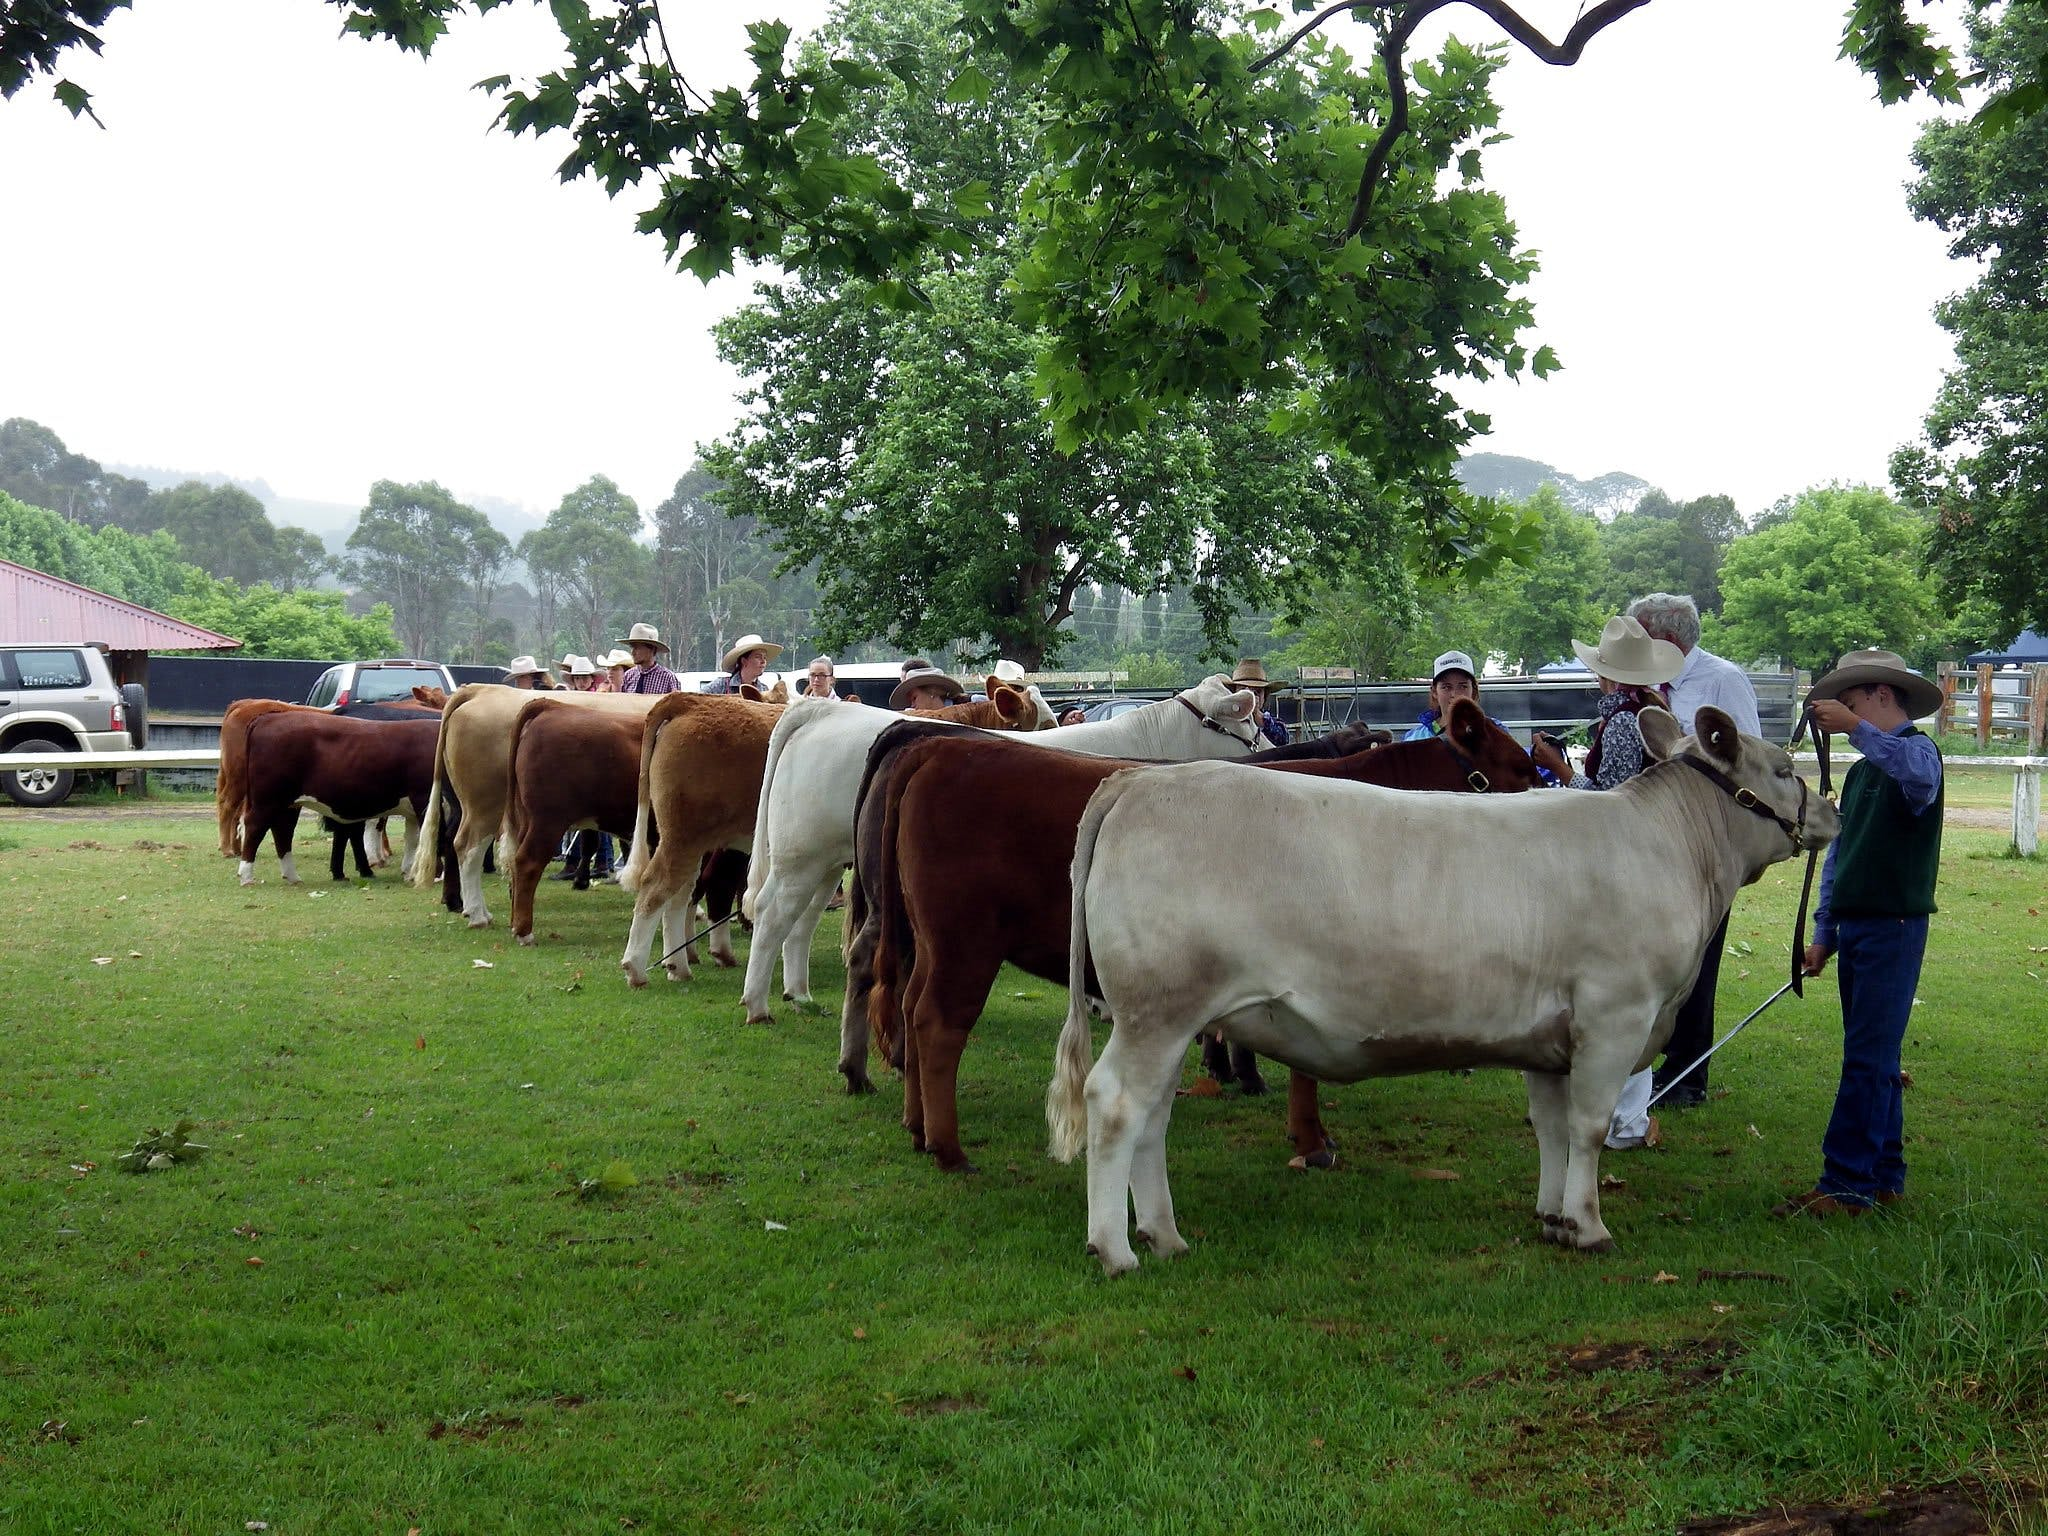 Dorrigo Agricultural Show - Yarra Valley Accommodation